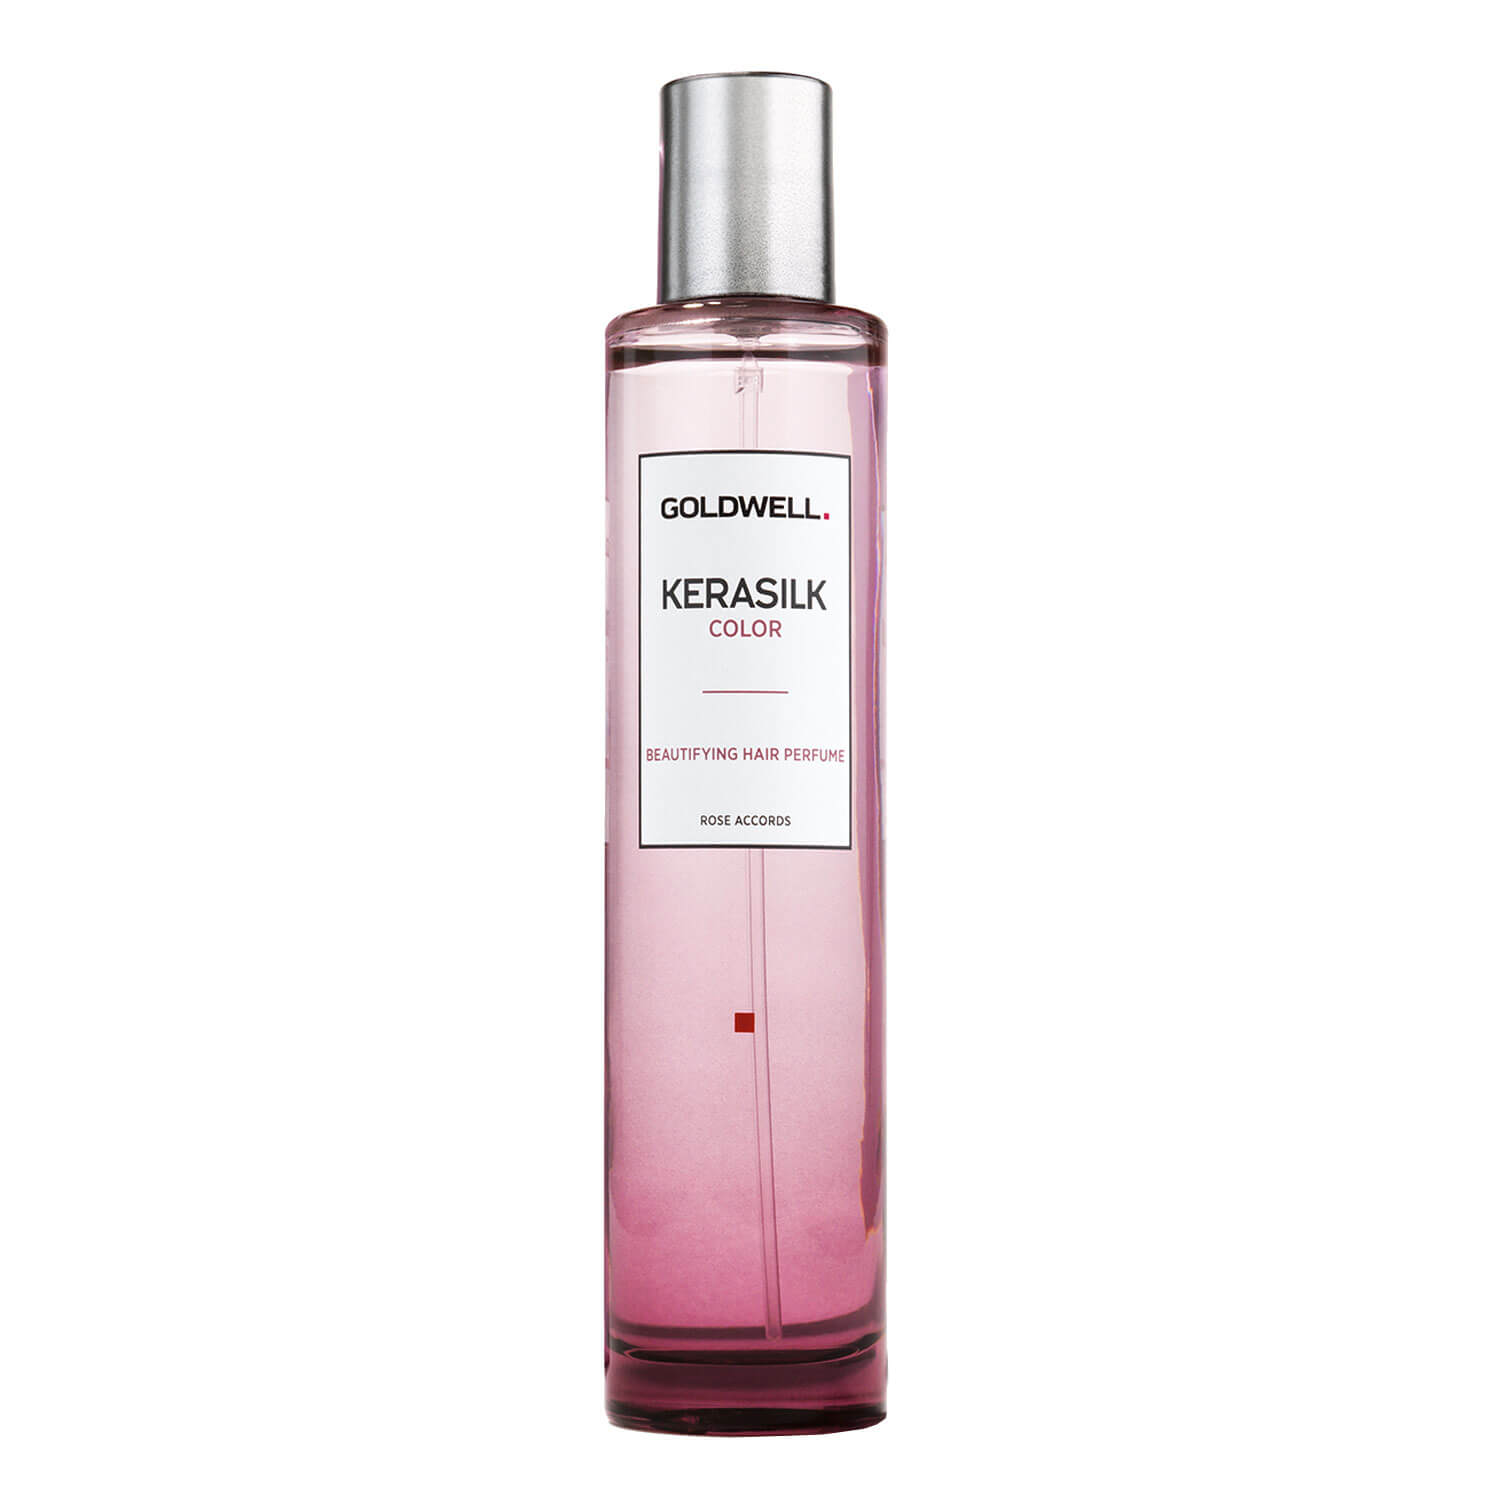 Kerasilk Color - Hair Perfume